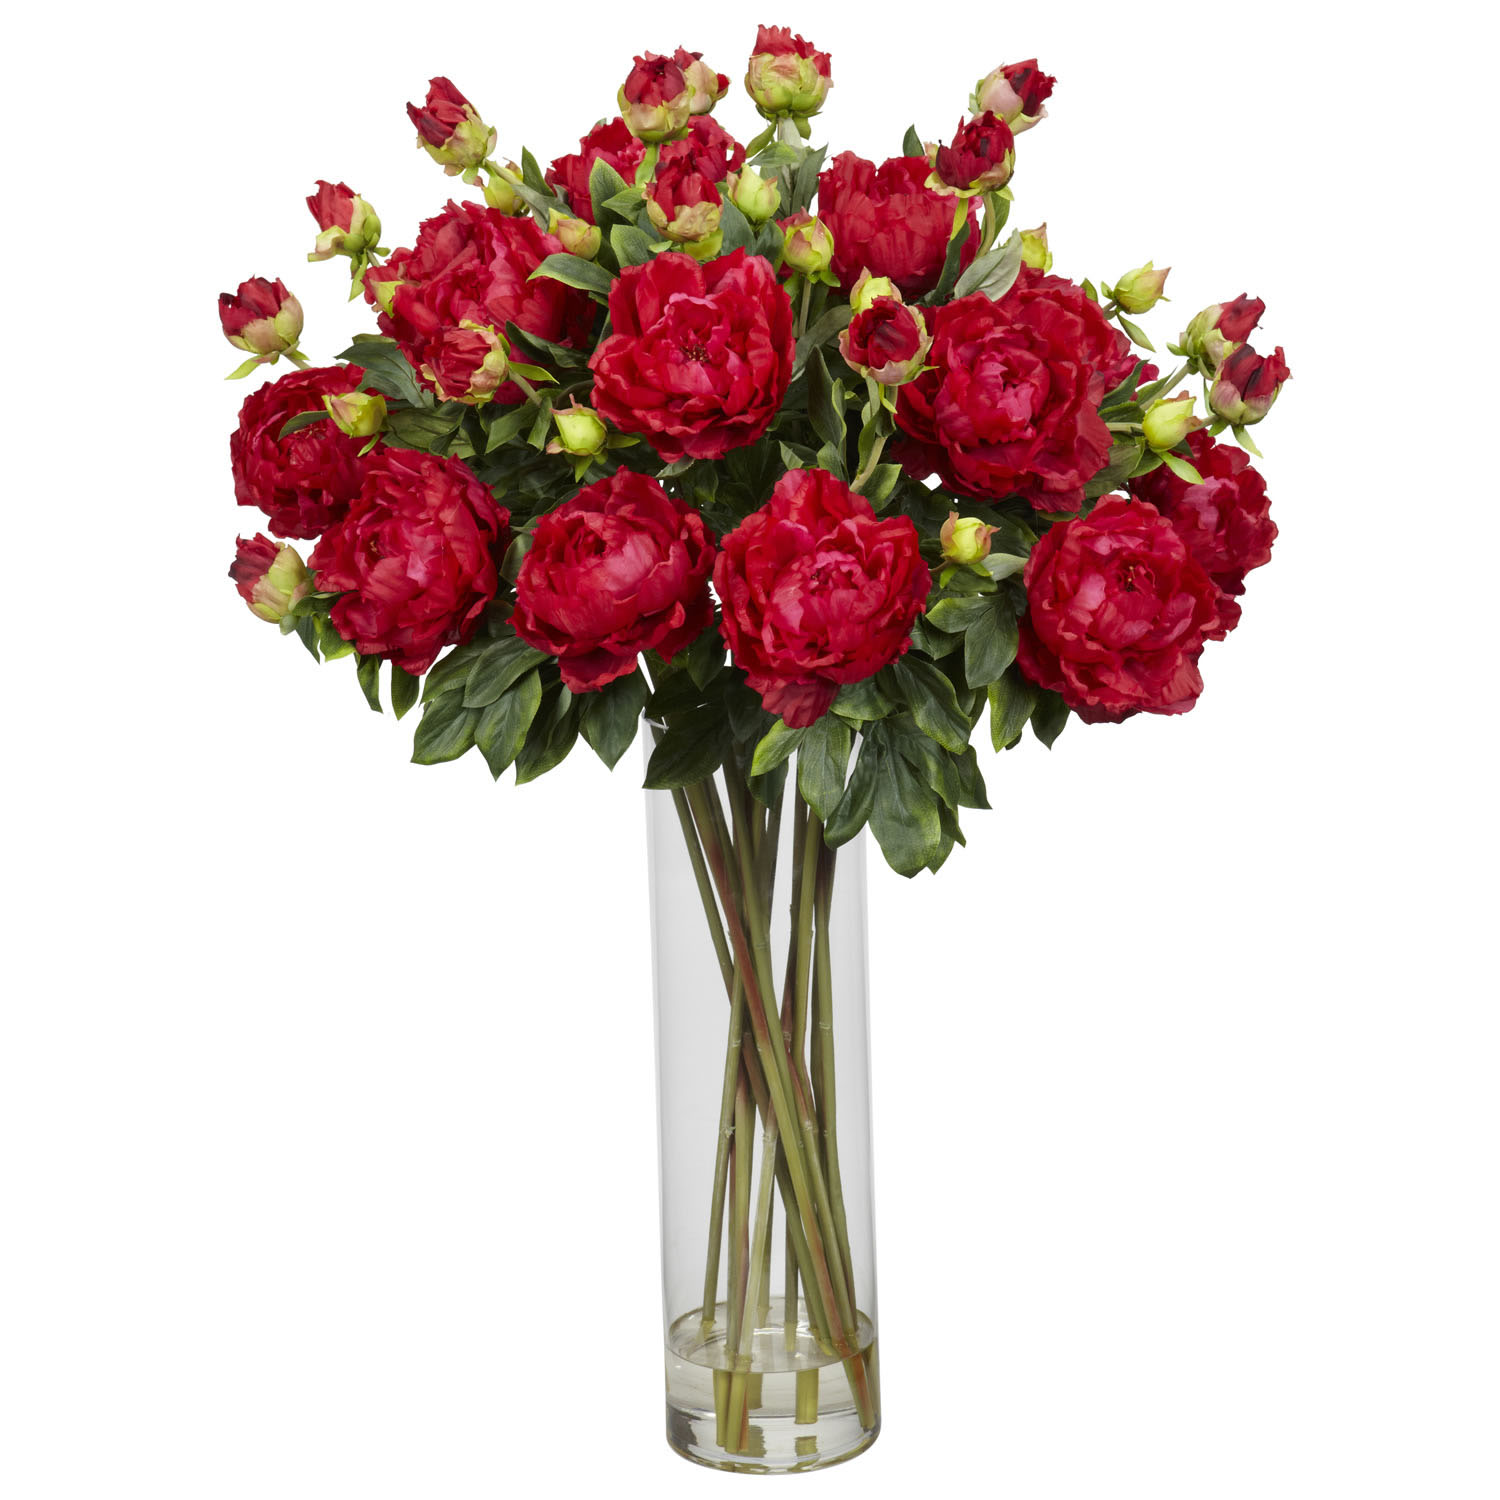 Information about Giant Peony Silk Flower Arrangement Product Photo